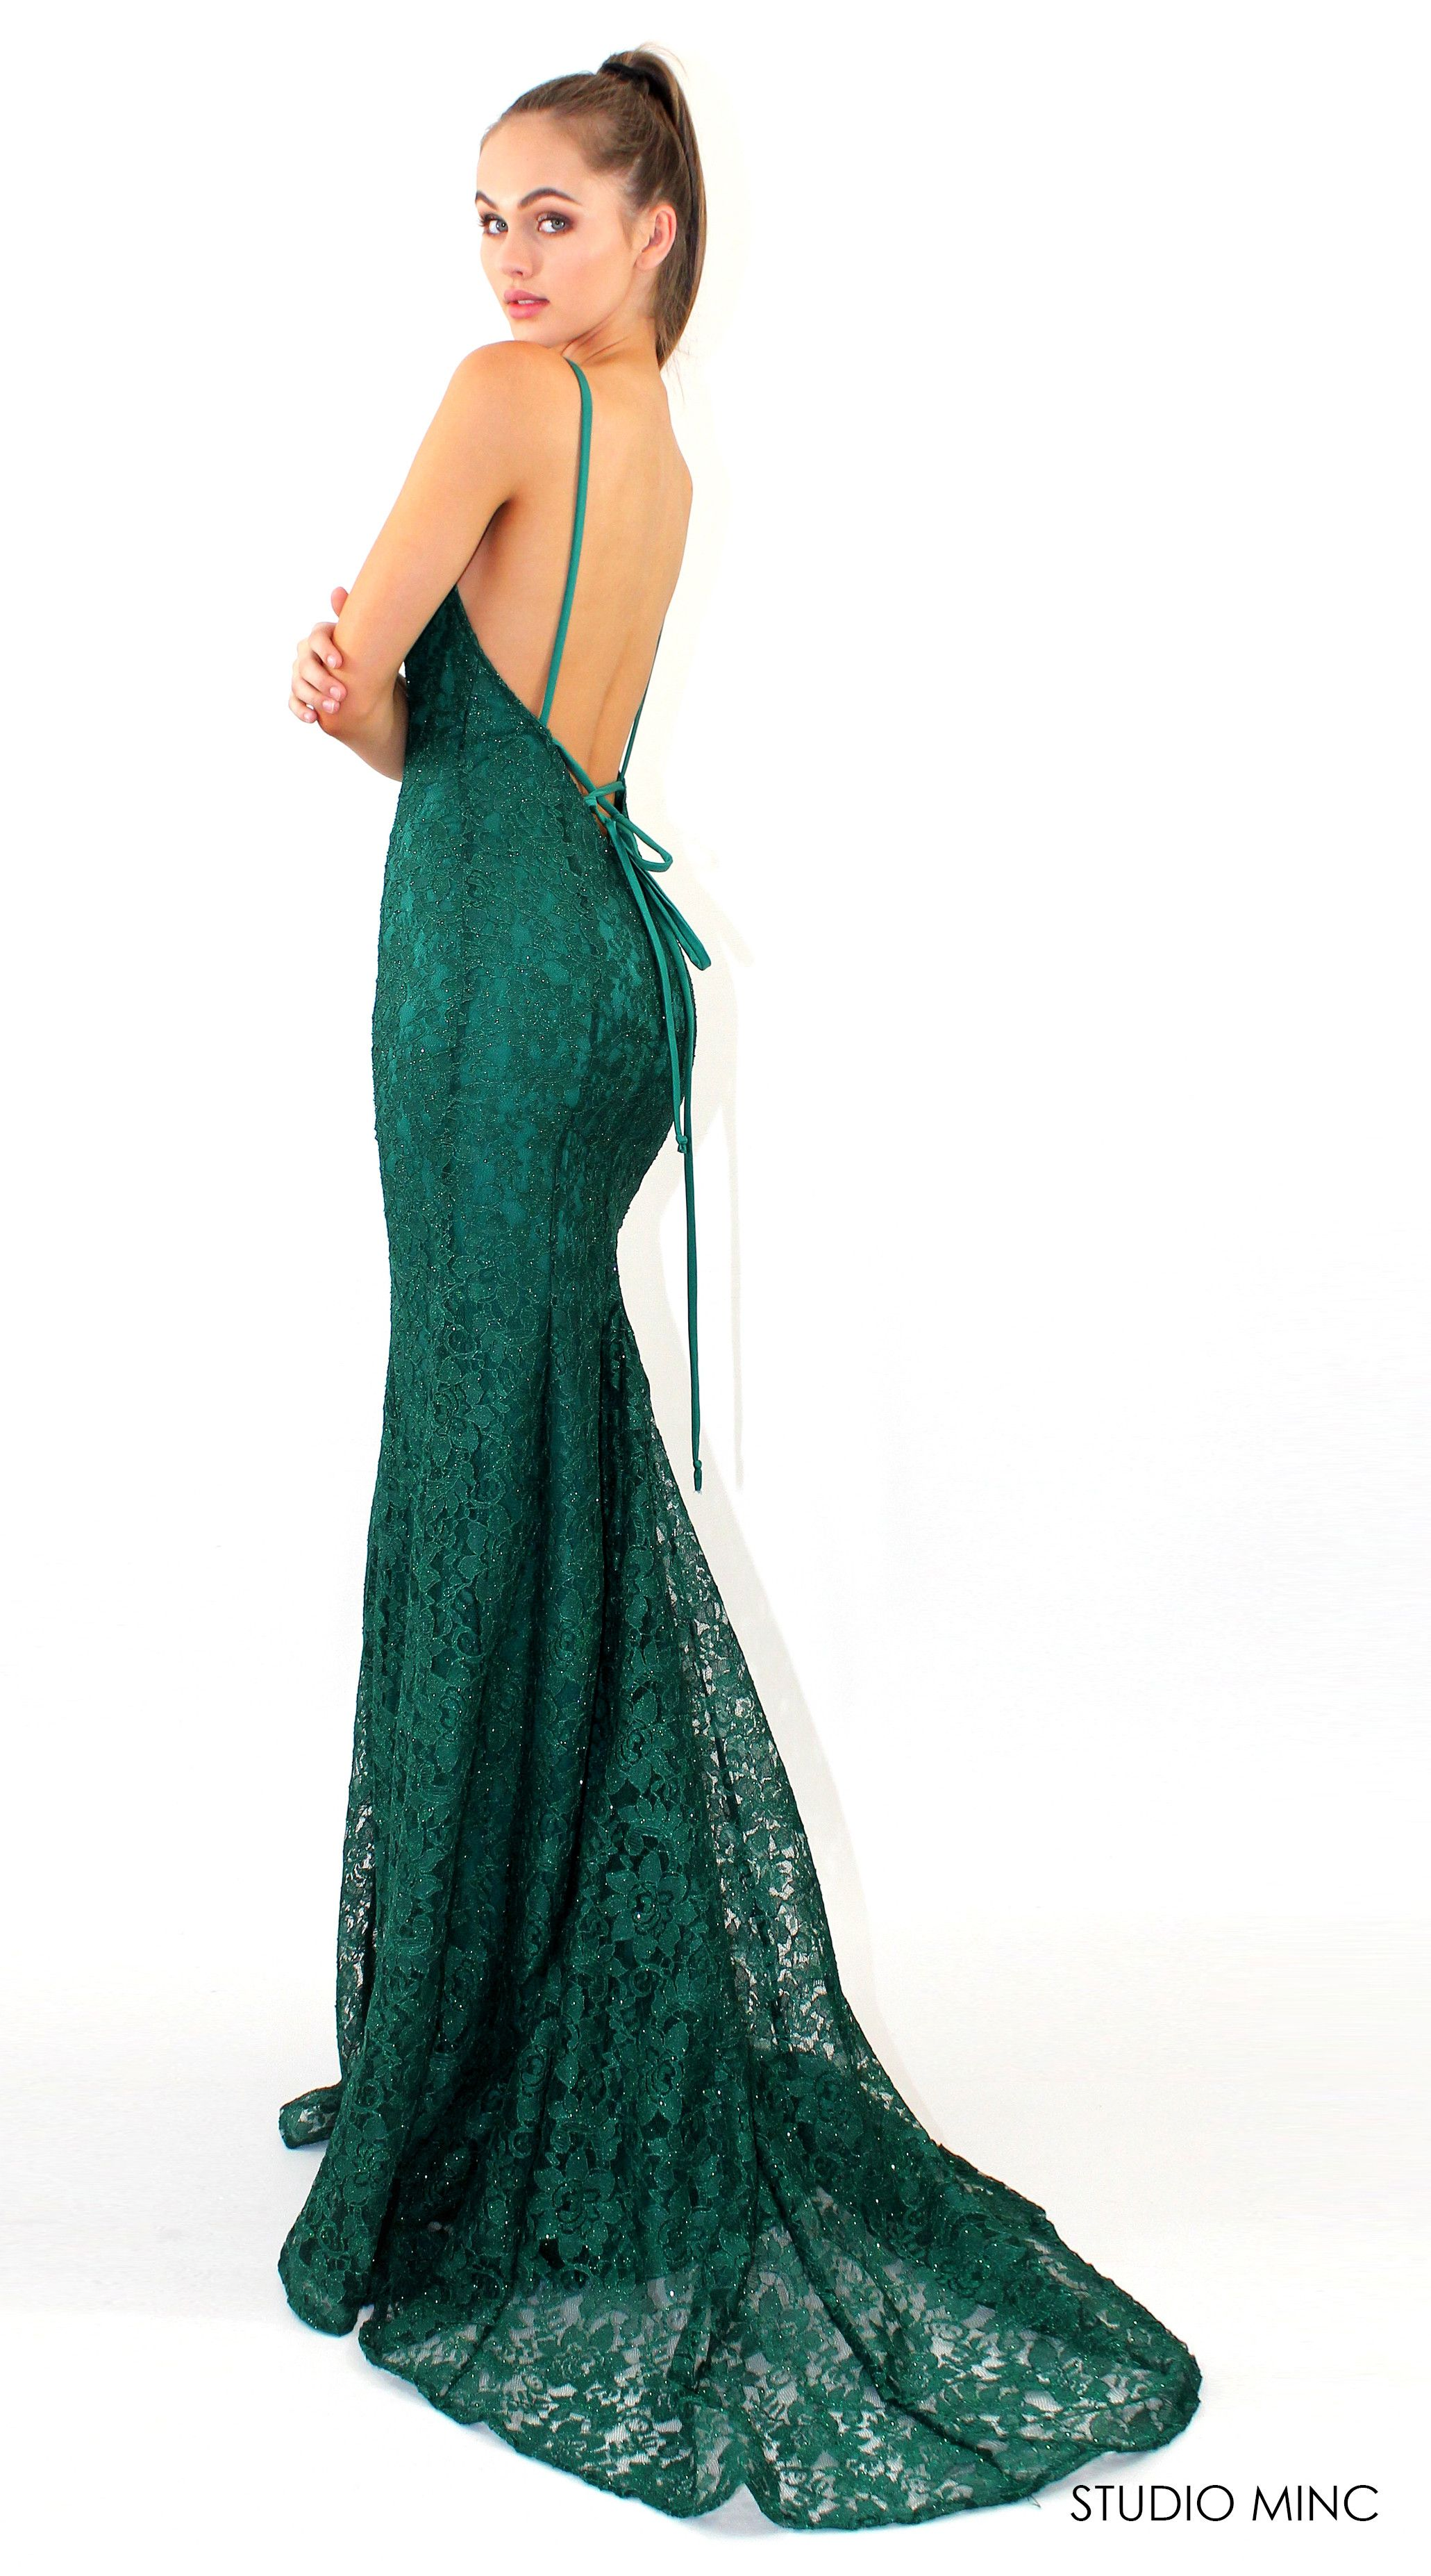 Emerald mythical | Formal prom dresses, Formal prom and Emeralds